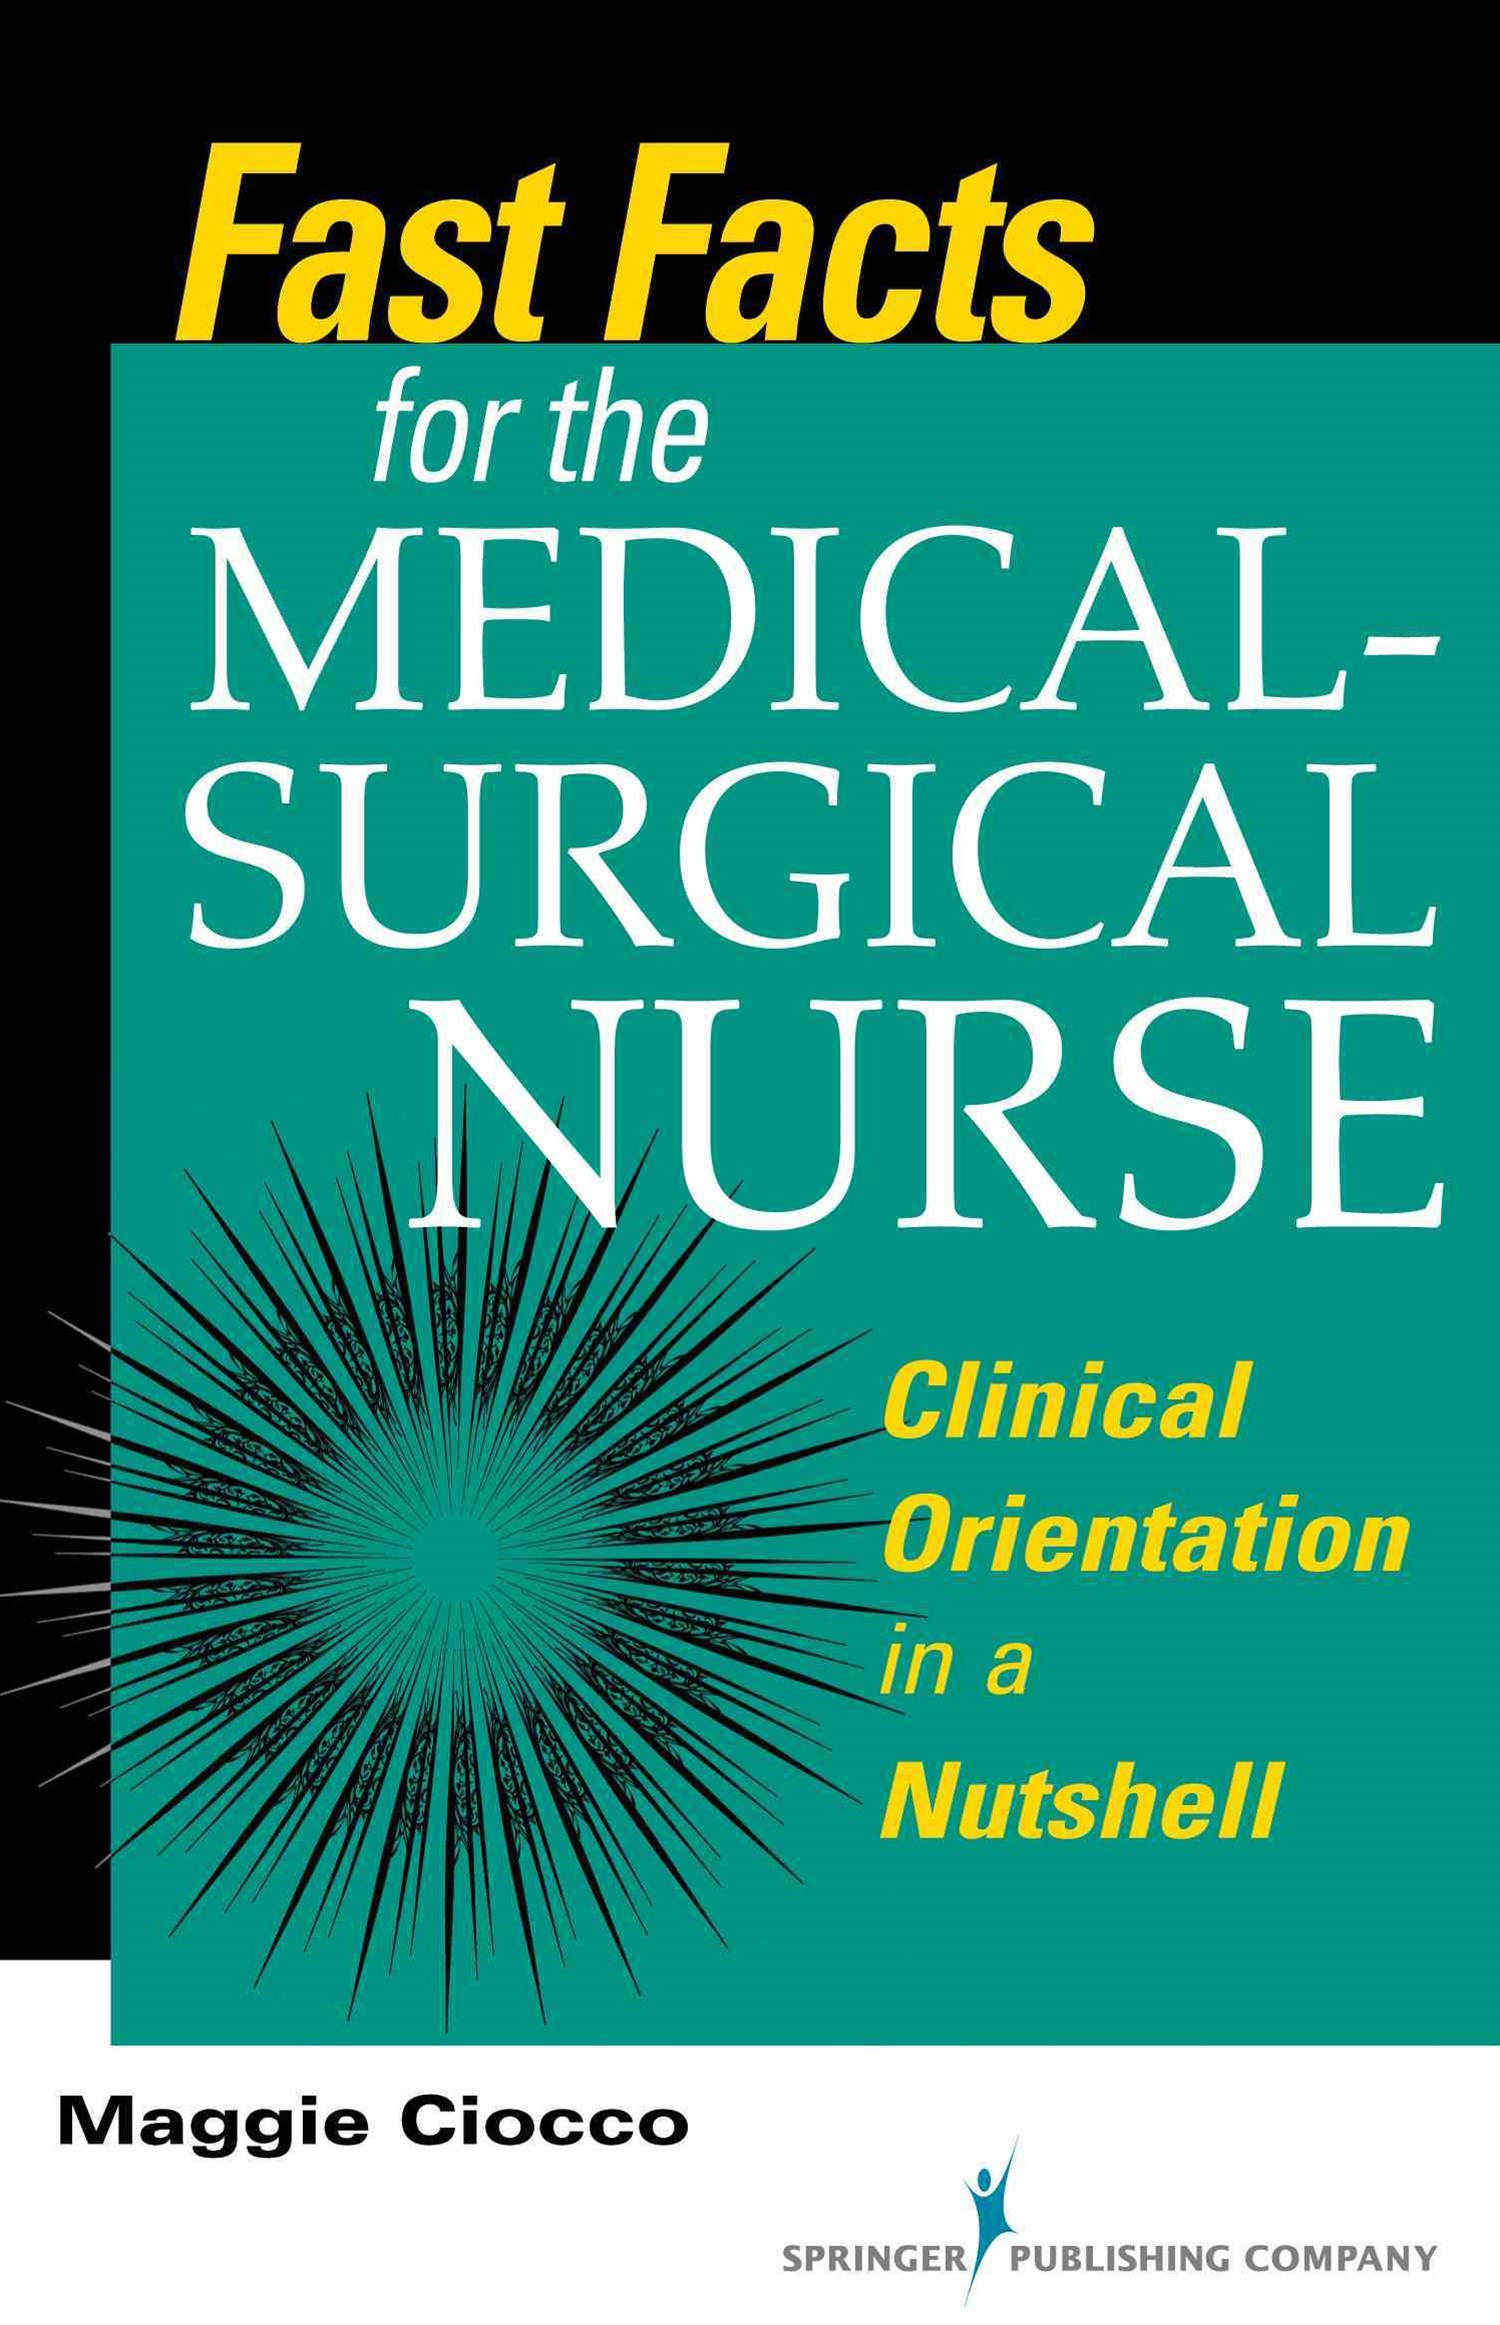 Fast Facts for the Medical-Surgical Nurse